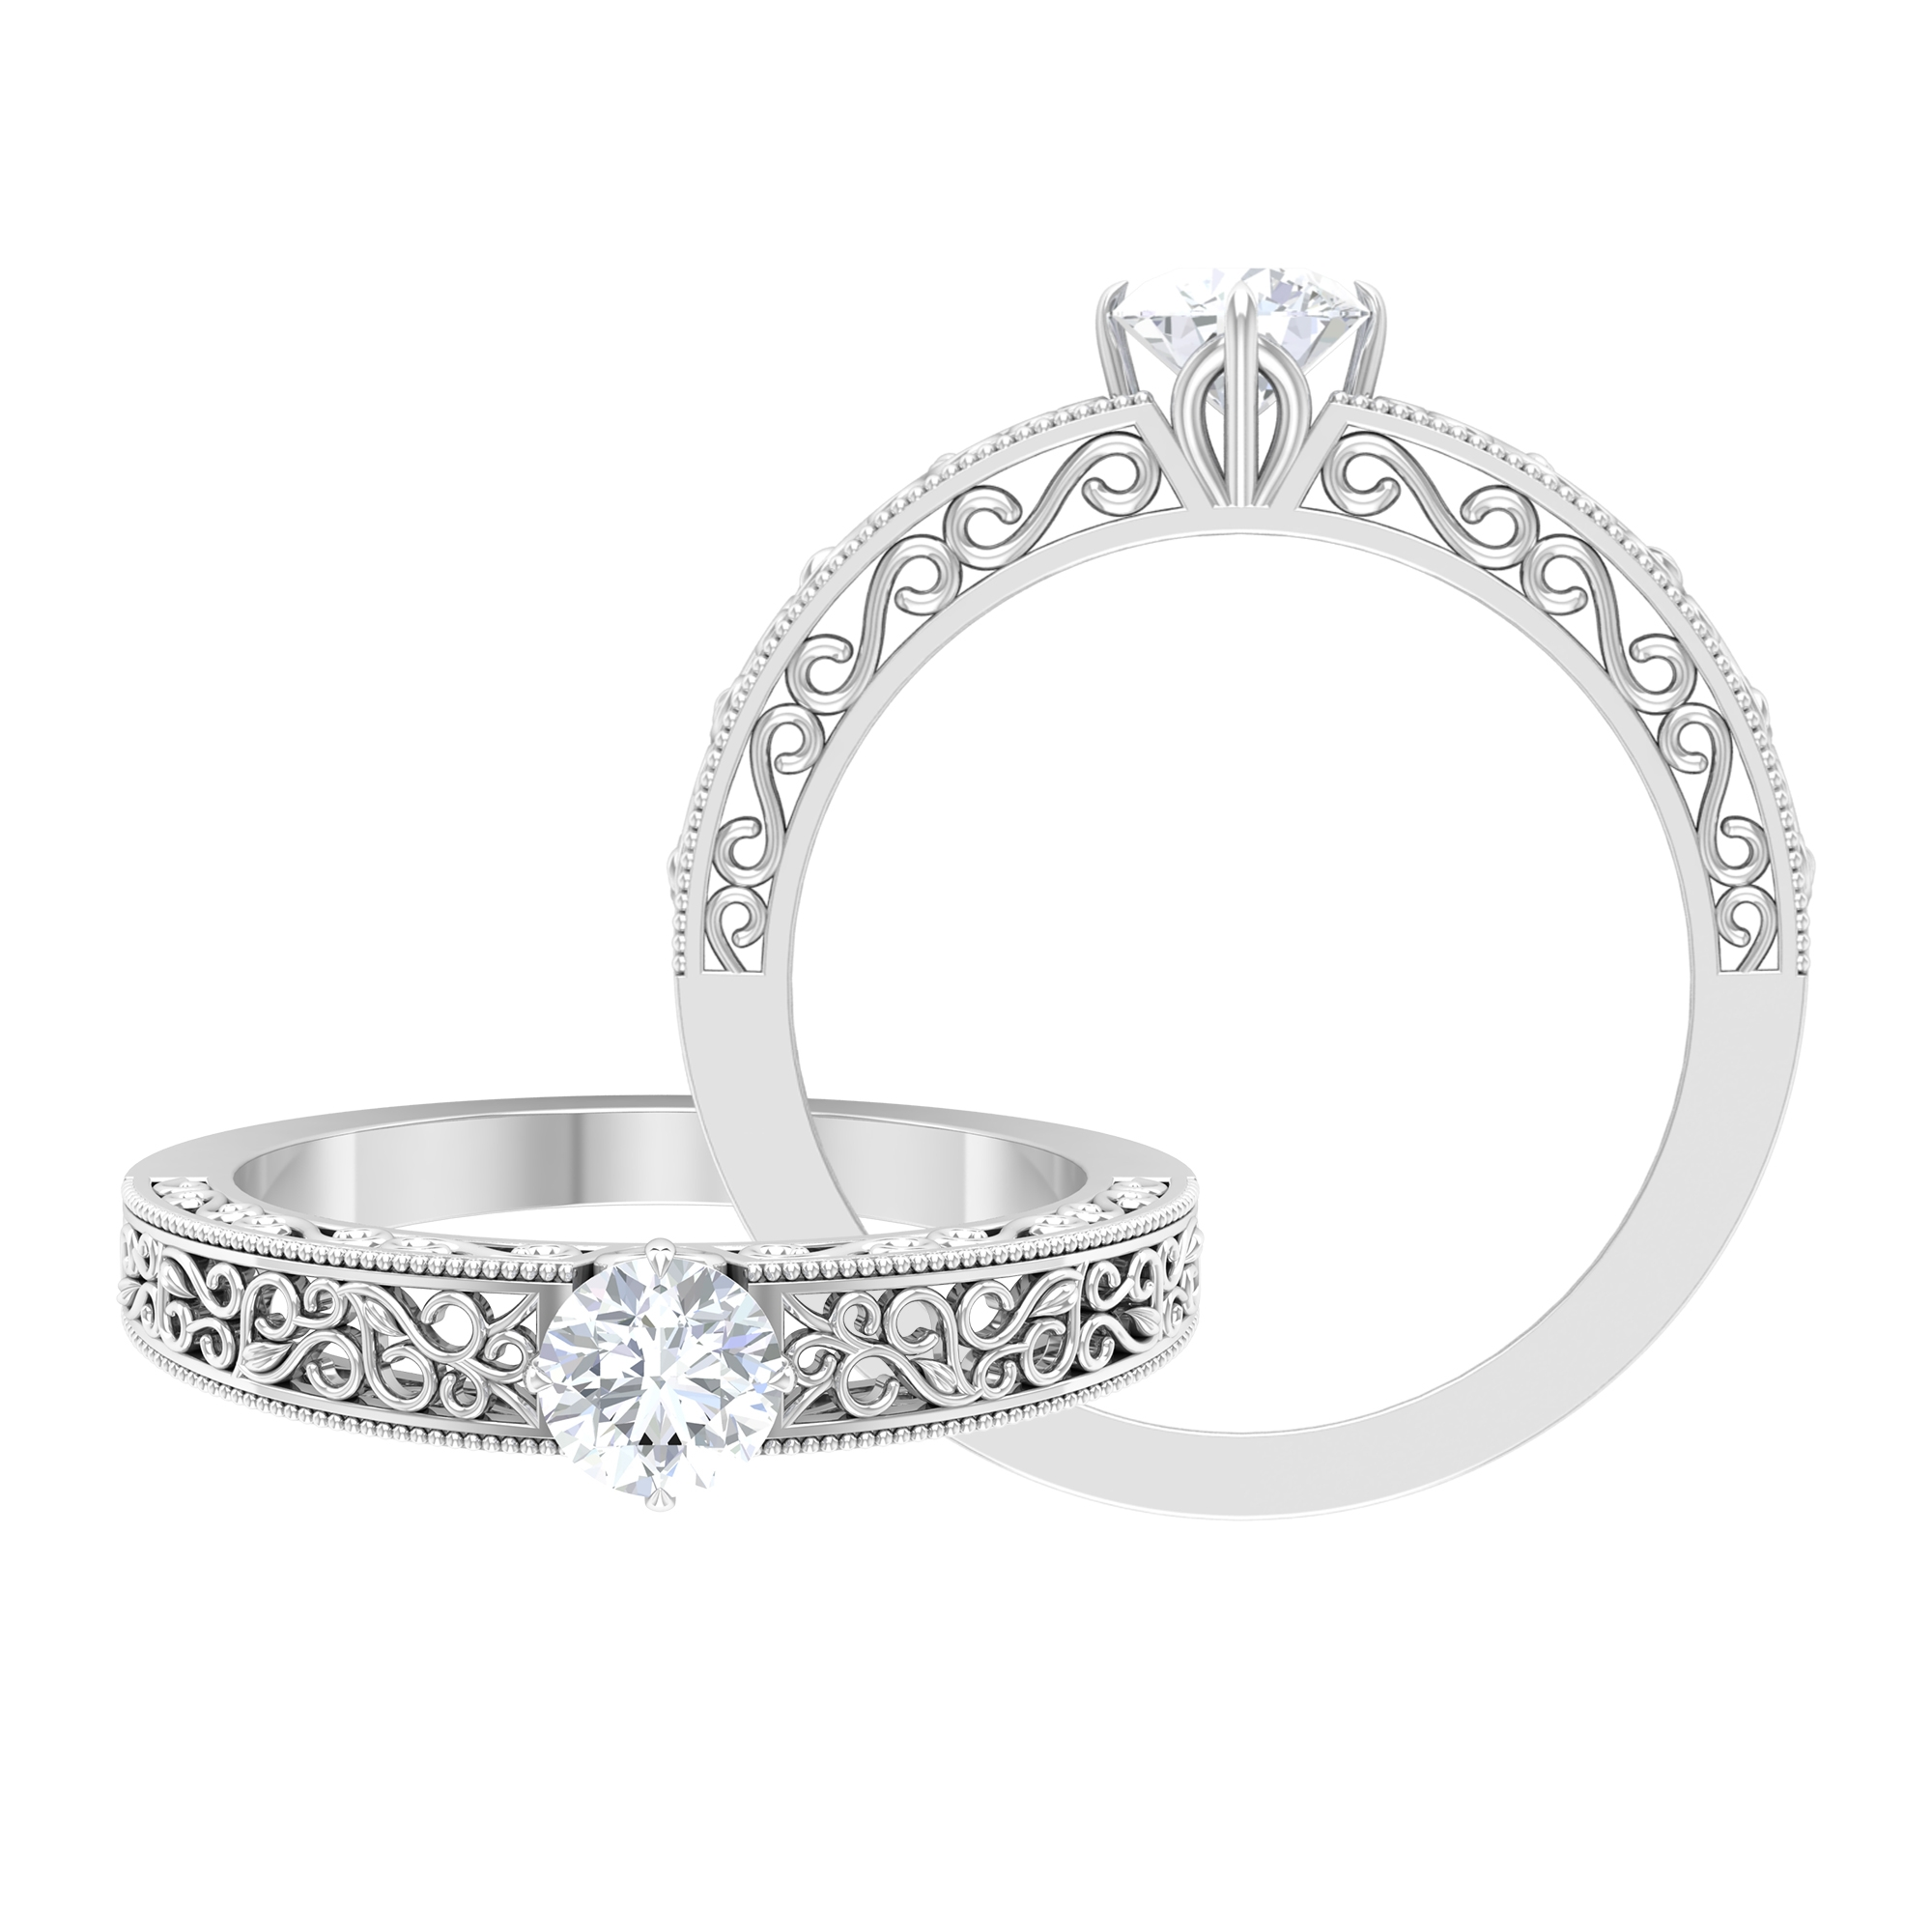 April Birthstone 5 MM Compass Claw Prong Set Round Cut Solitaire Diamond Filigree Ring